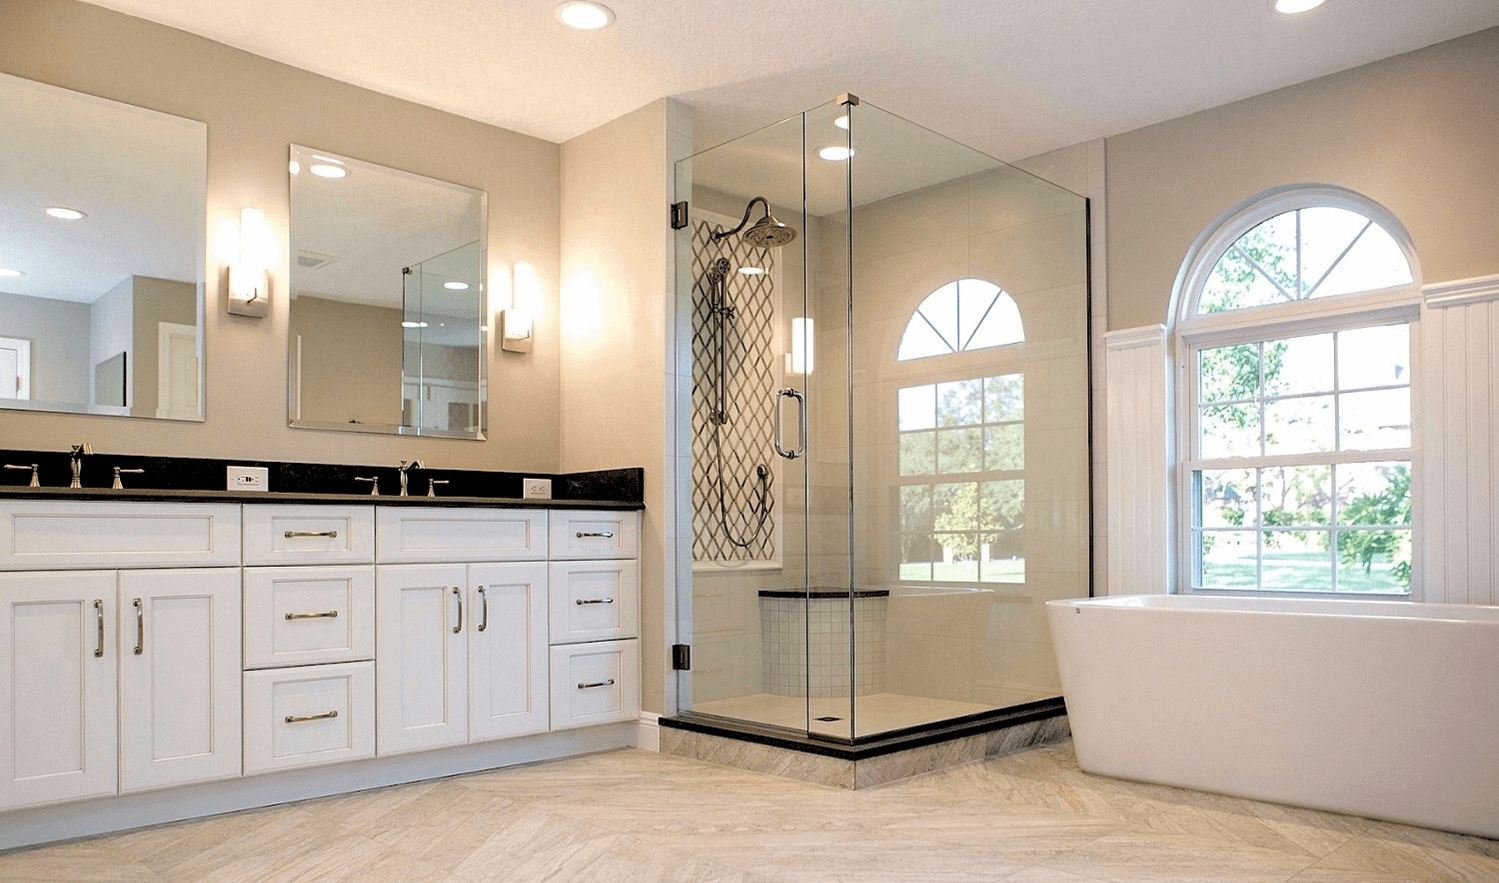 Bathroom remodel cost orlando bruin blog for Bathroom remodeling orlando fl